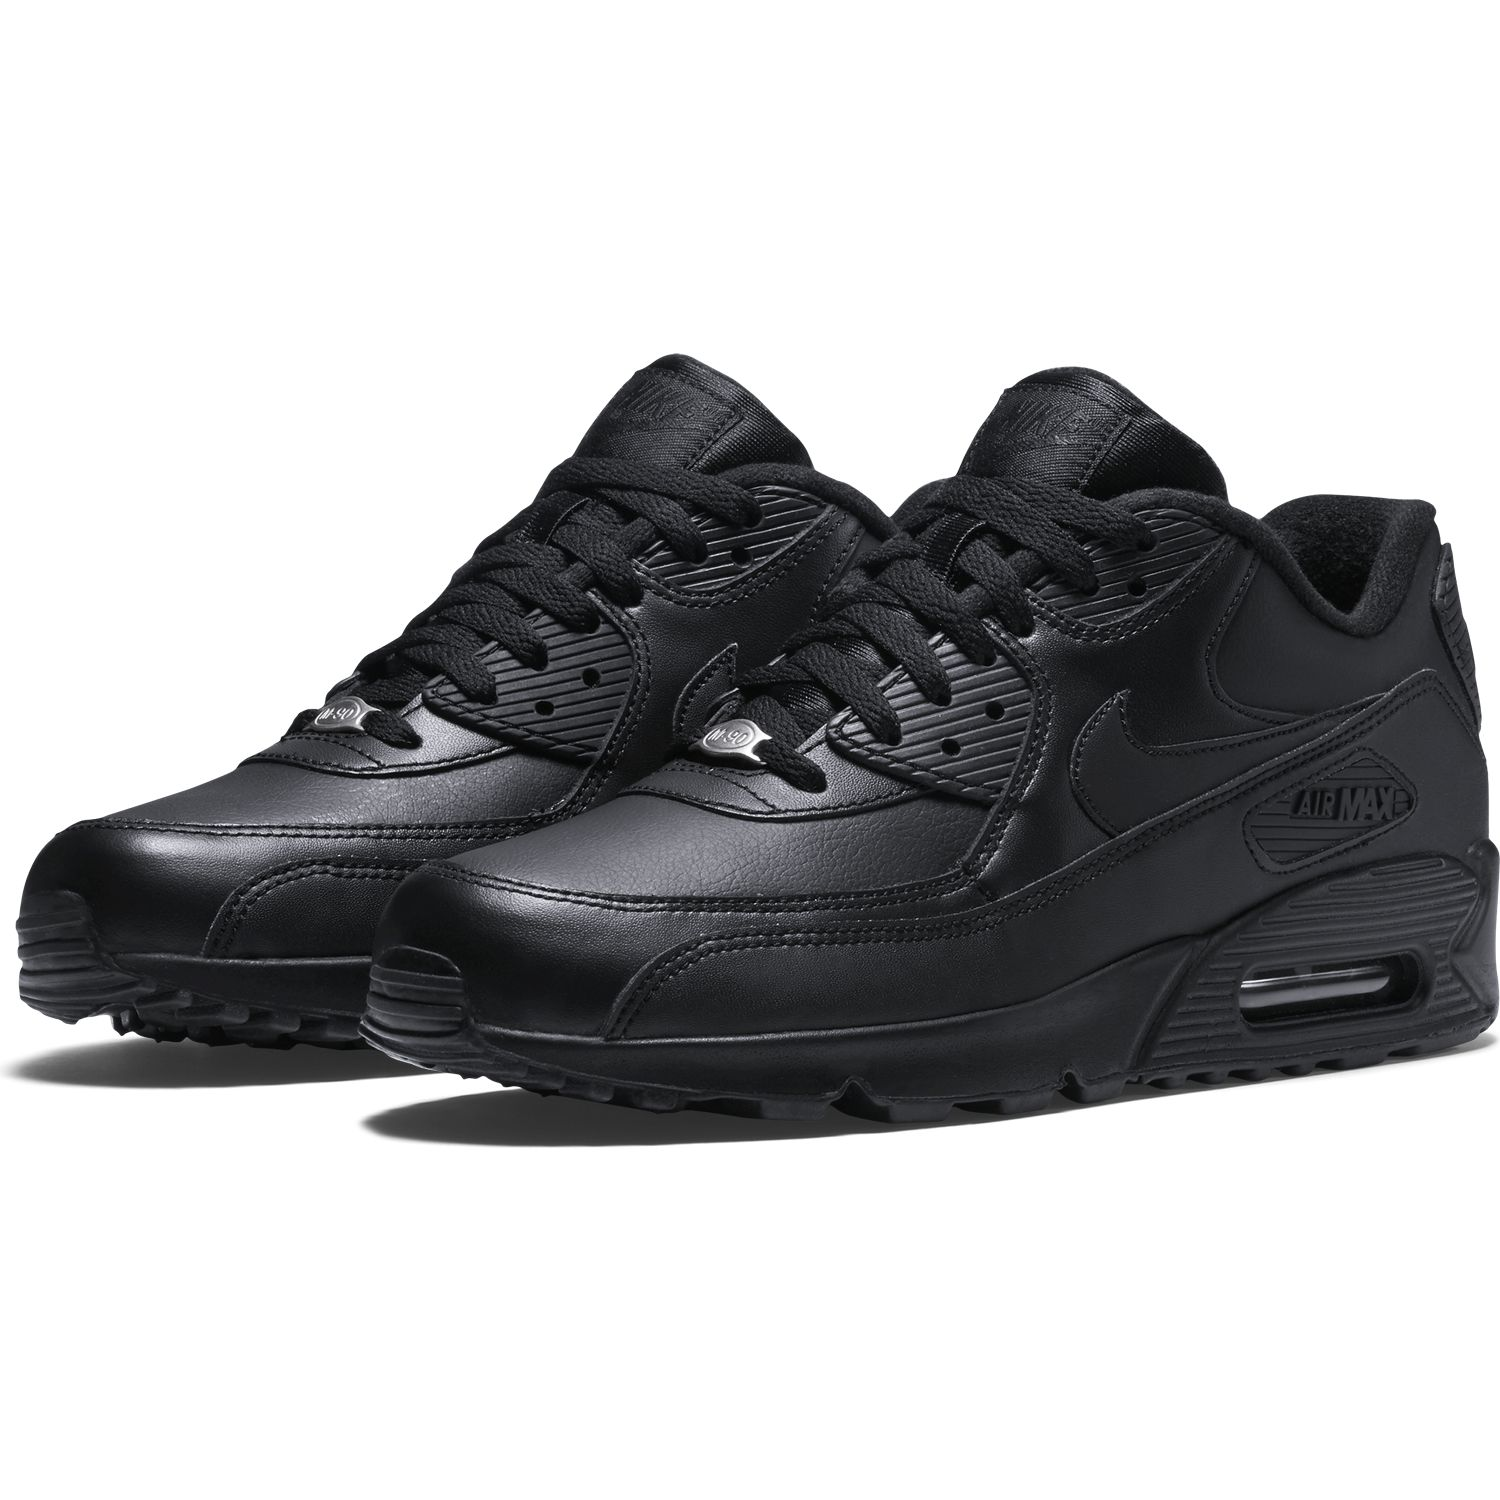 Buty męskie Nike Air Max 90 Leather All Black 302519 001